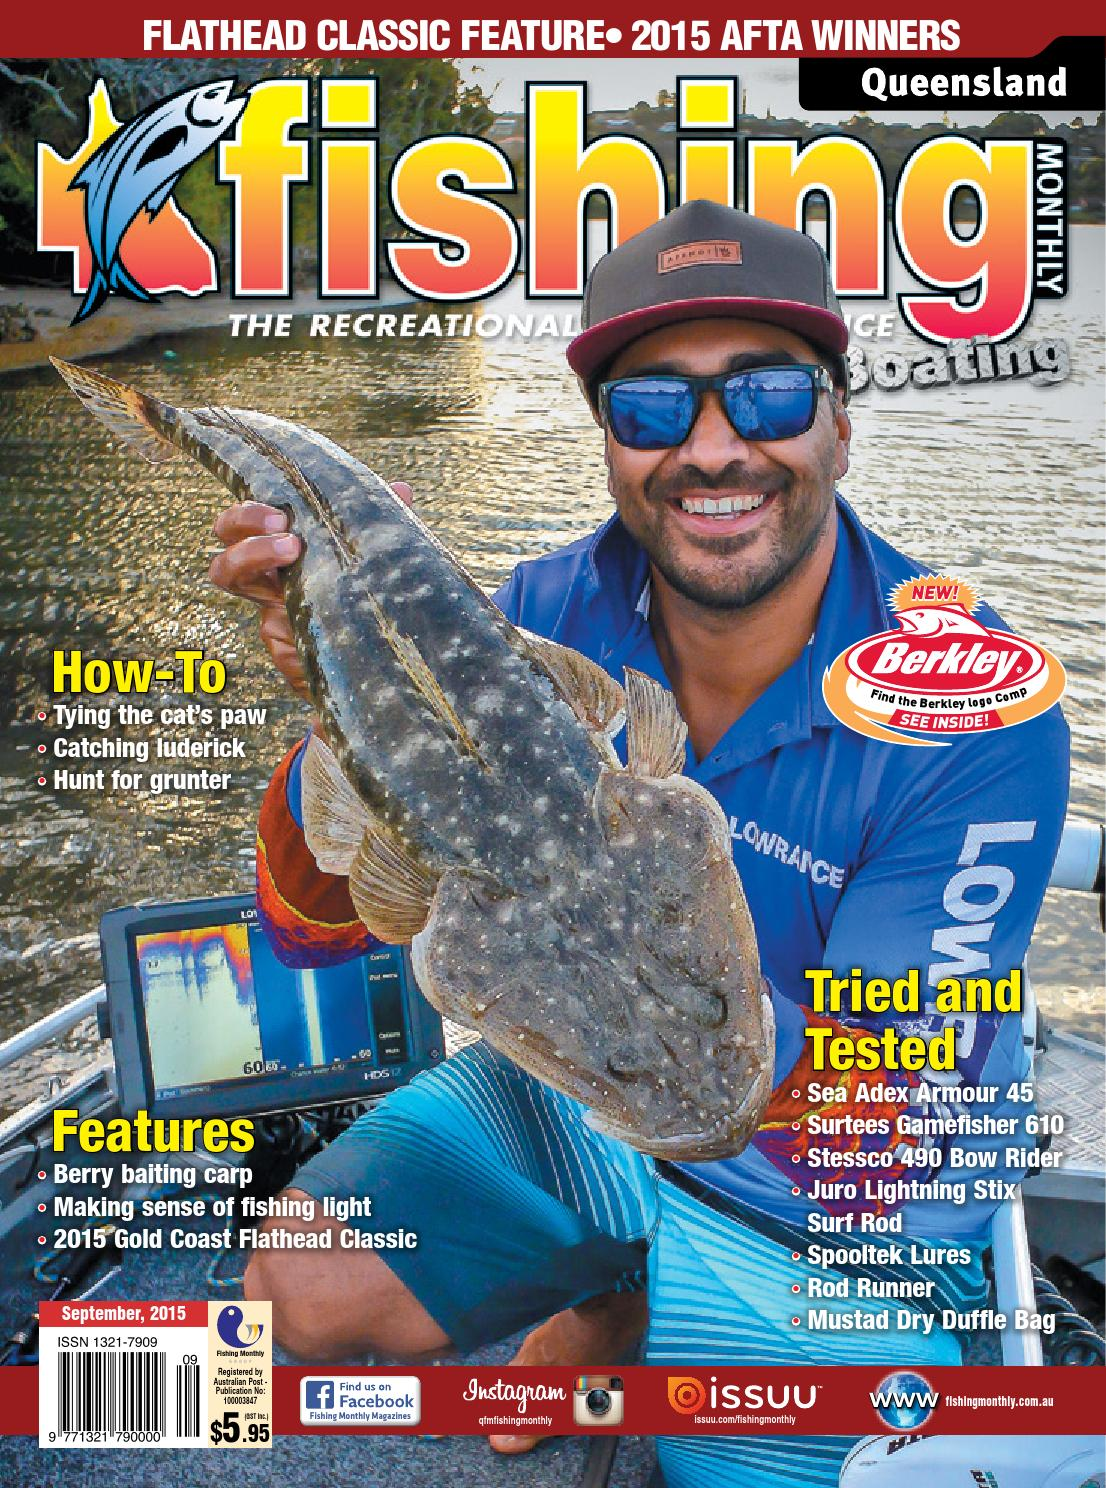 819abaf409 Queensland Fishing Monthly - September 2015 by Fishing Monthly - issuu